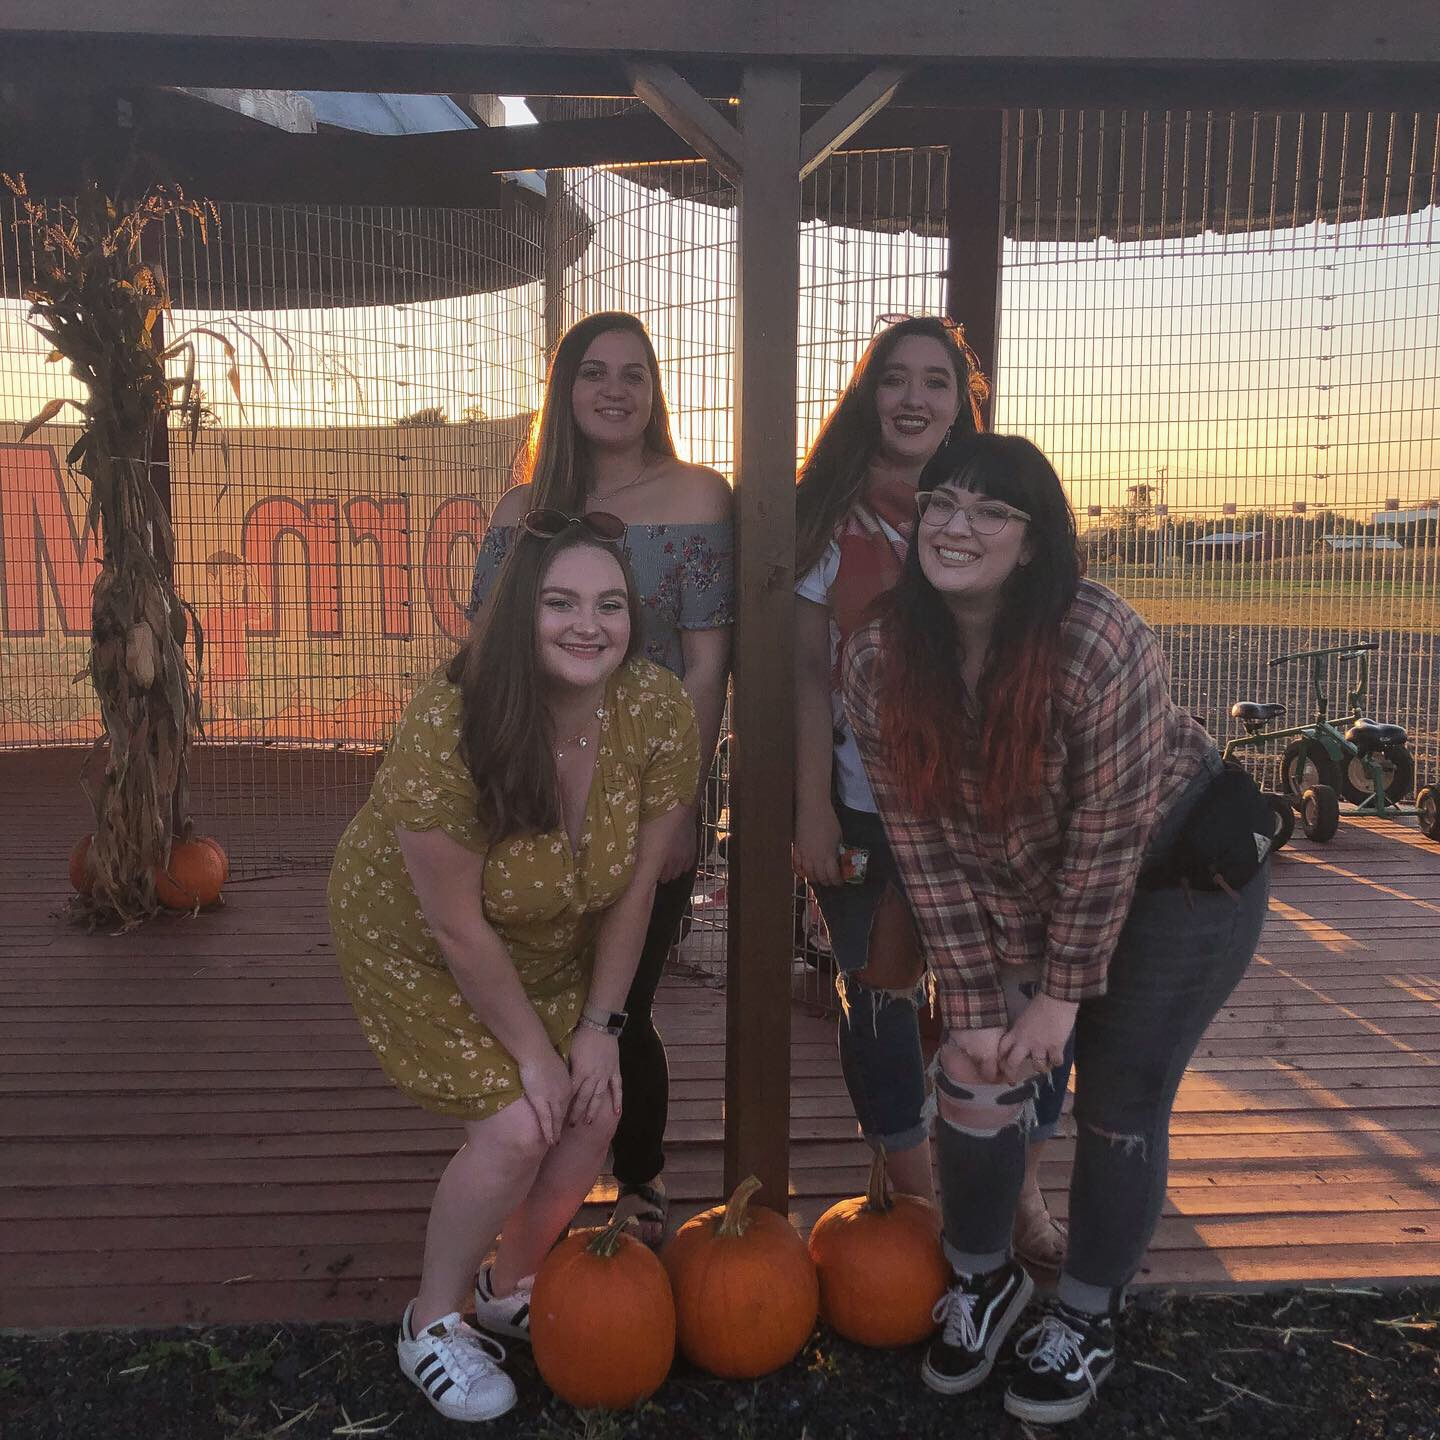 Four Moravian students visiting a local pumpkin patch to kick off the fall season. Photo courtesy of Emma Hutchman and Alyssa Flannery.